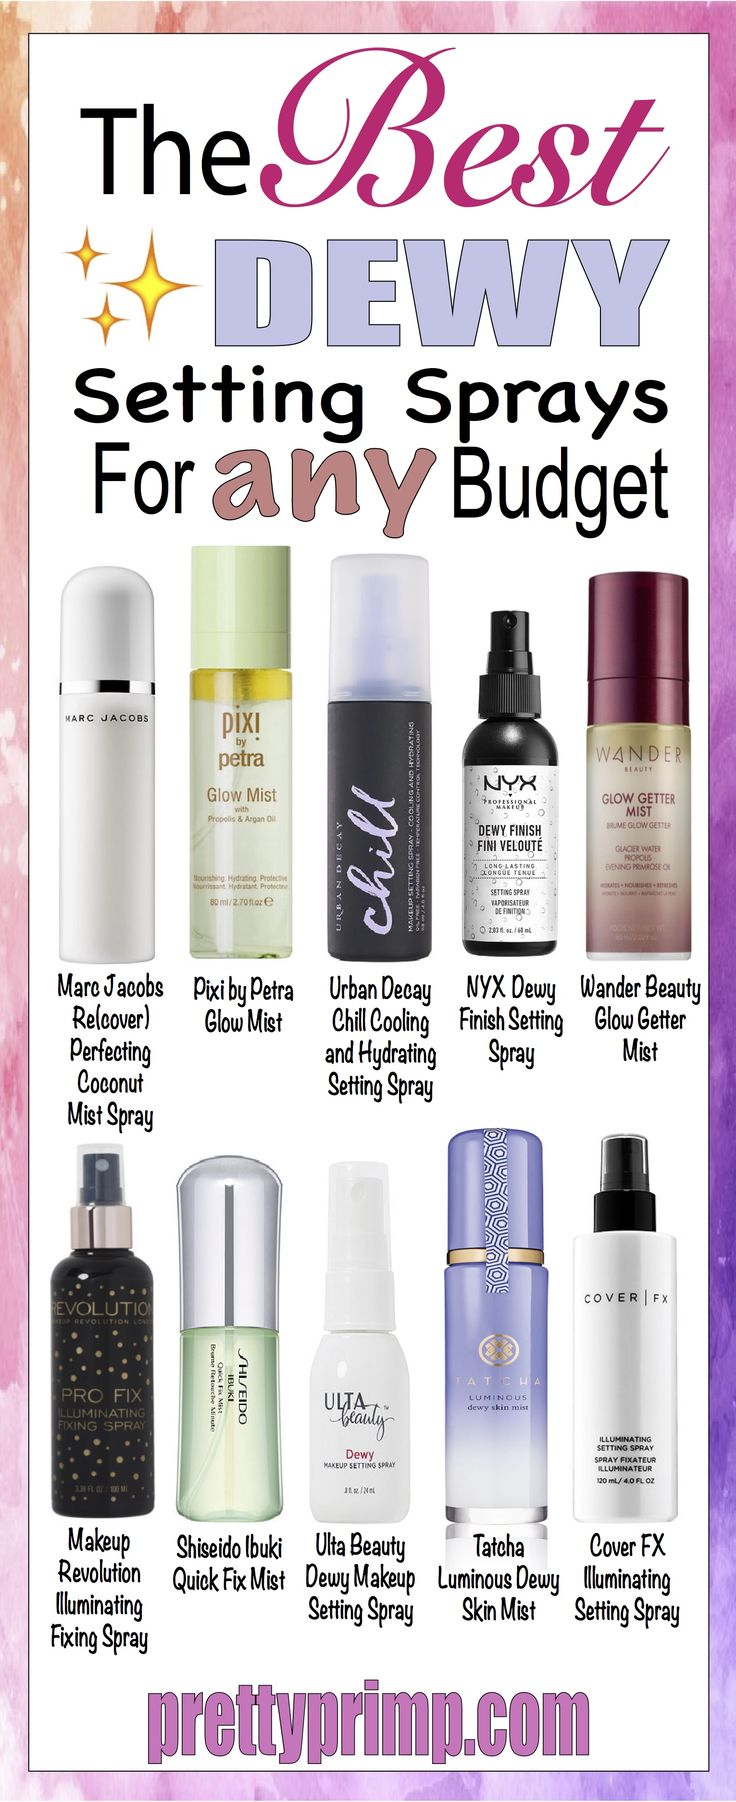 The best dewy setting sprays from drugstore brands like NYX and Pixi to luxury brands like Tatcha and Urban Decay! #makeuplover #makeupartist #beautytips #beautyblogger #urbandecay #nyxprofessionalmakeup #marcjacobs